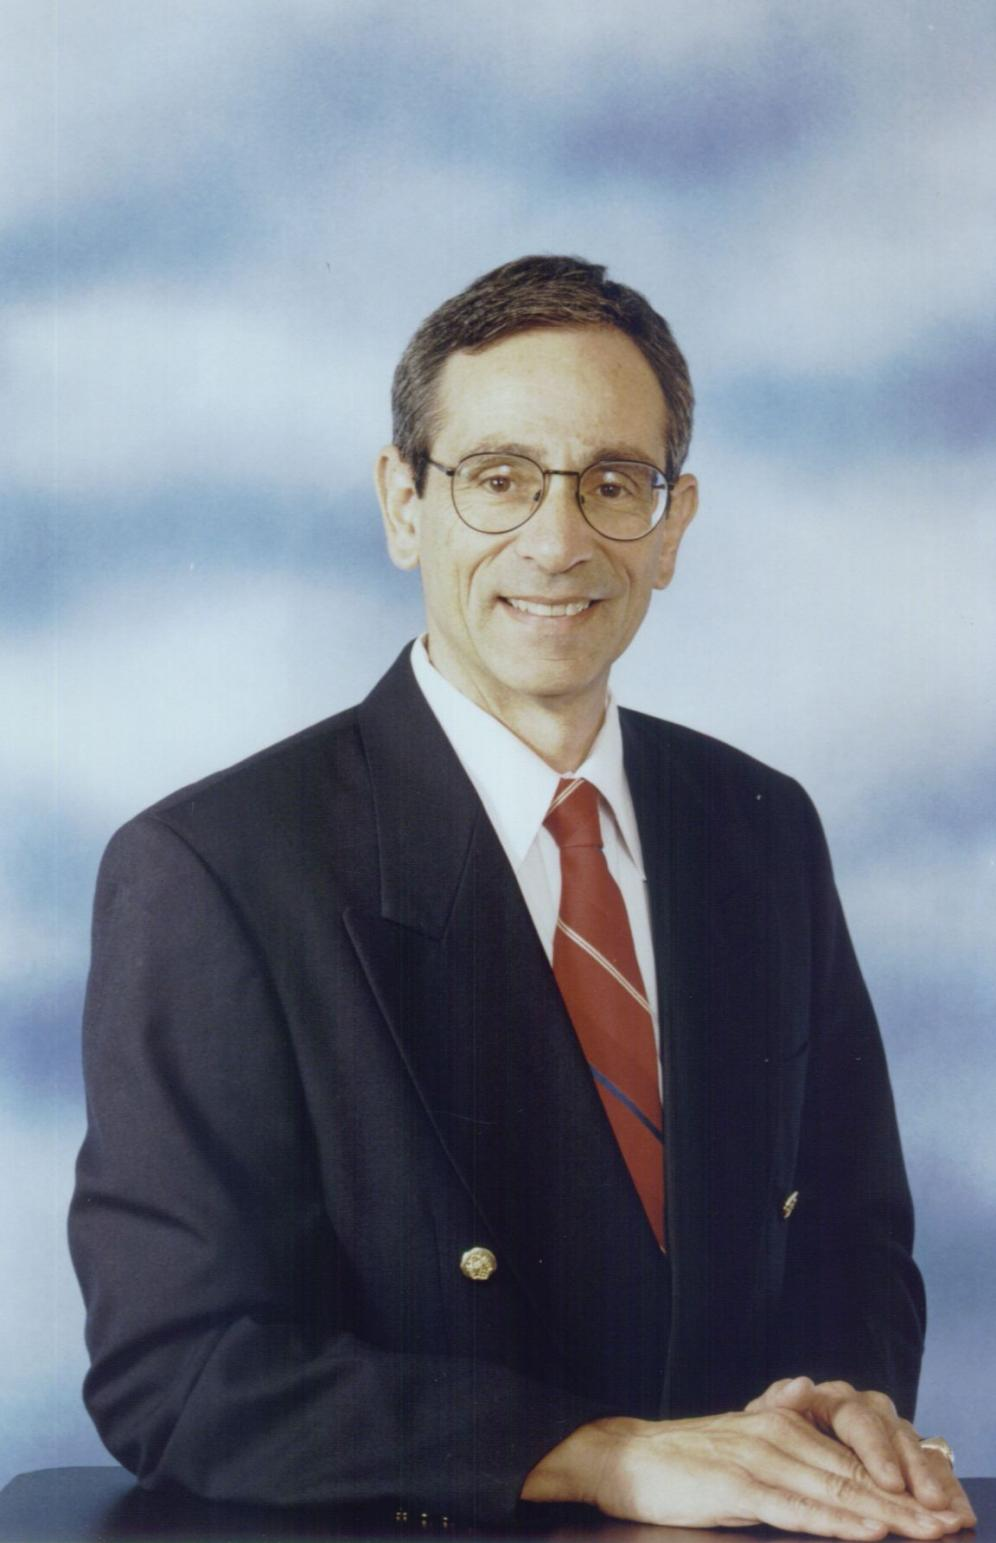 Robert Barrows, President of R.M. Barrows, Inc. Advertising & Public Relations